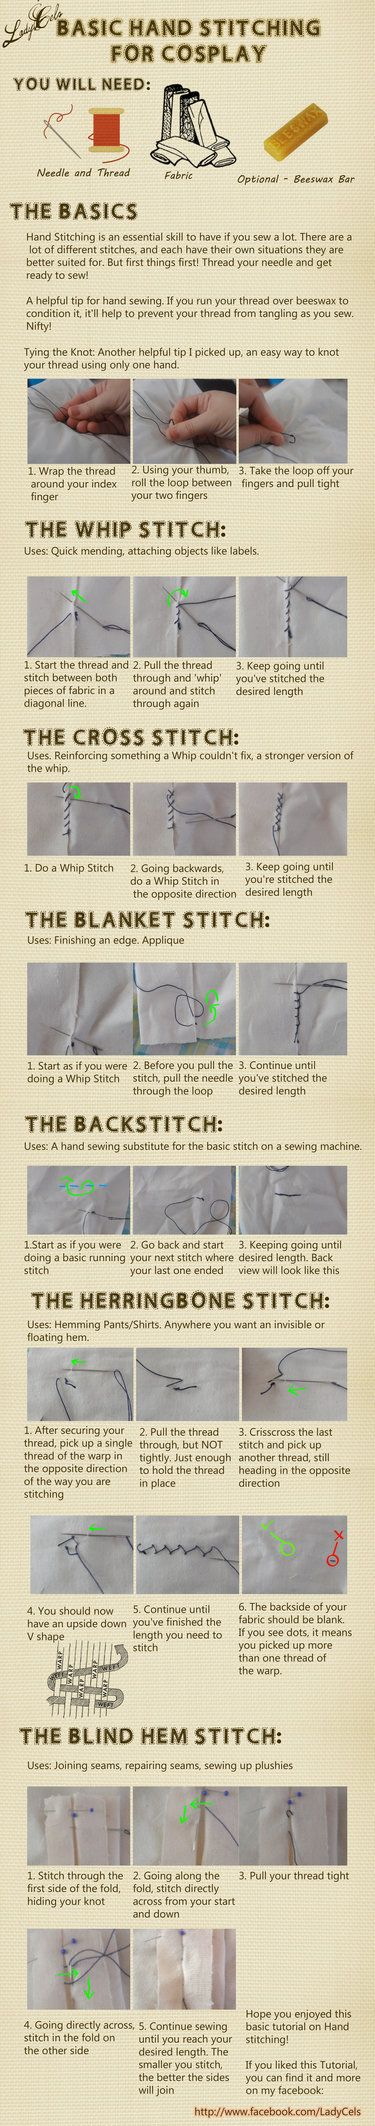 Hand stitching for Cosplay Tutorial by DragonLadyCels; great! I don't know how to sew but this looks easy enough to follow!